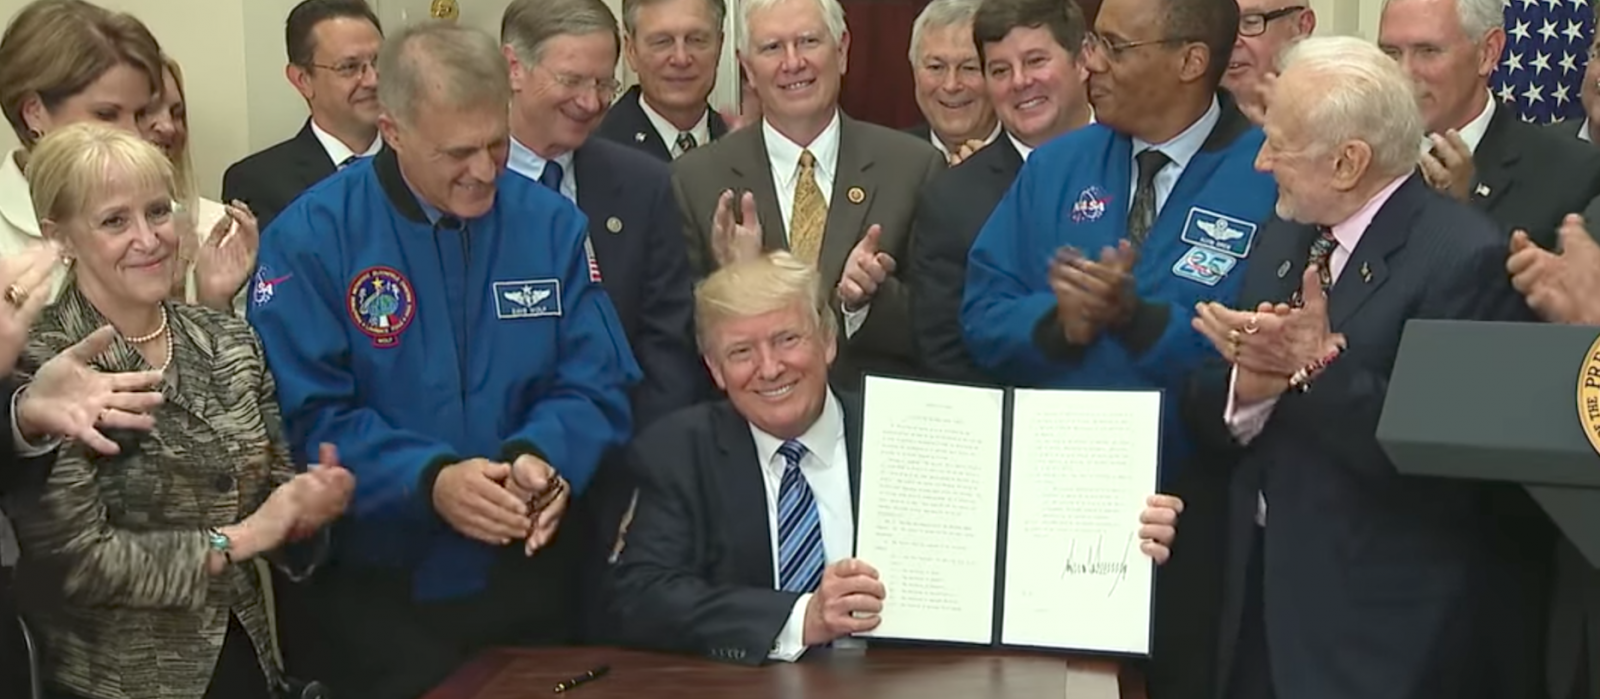 President Trump displays the Executive Order authorizing the reinstatement of the National Space Council.